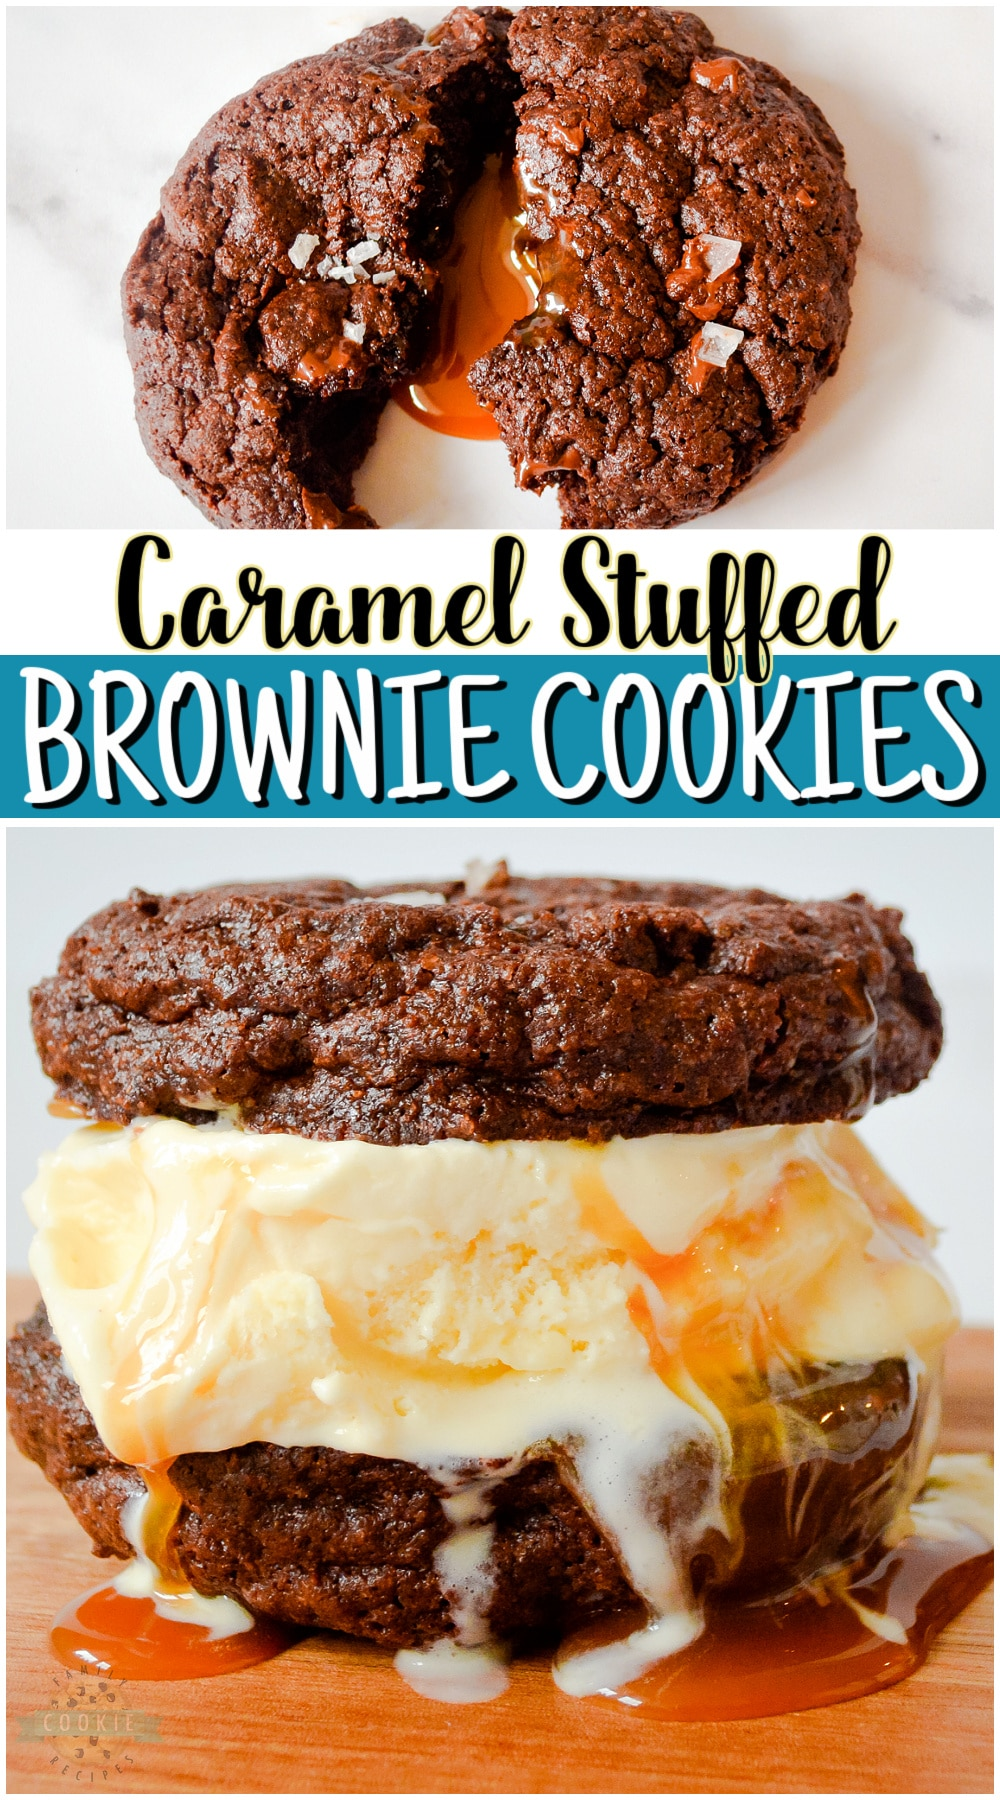 Caramel Brownie Cookies made with a brownie mix & stuffed with buttery soft caramels. Big, indulgent chocolate cookies with great flavors, especially with a sprinkle of sea salt on top! via @familycookierecipes